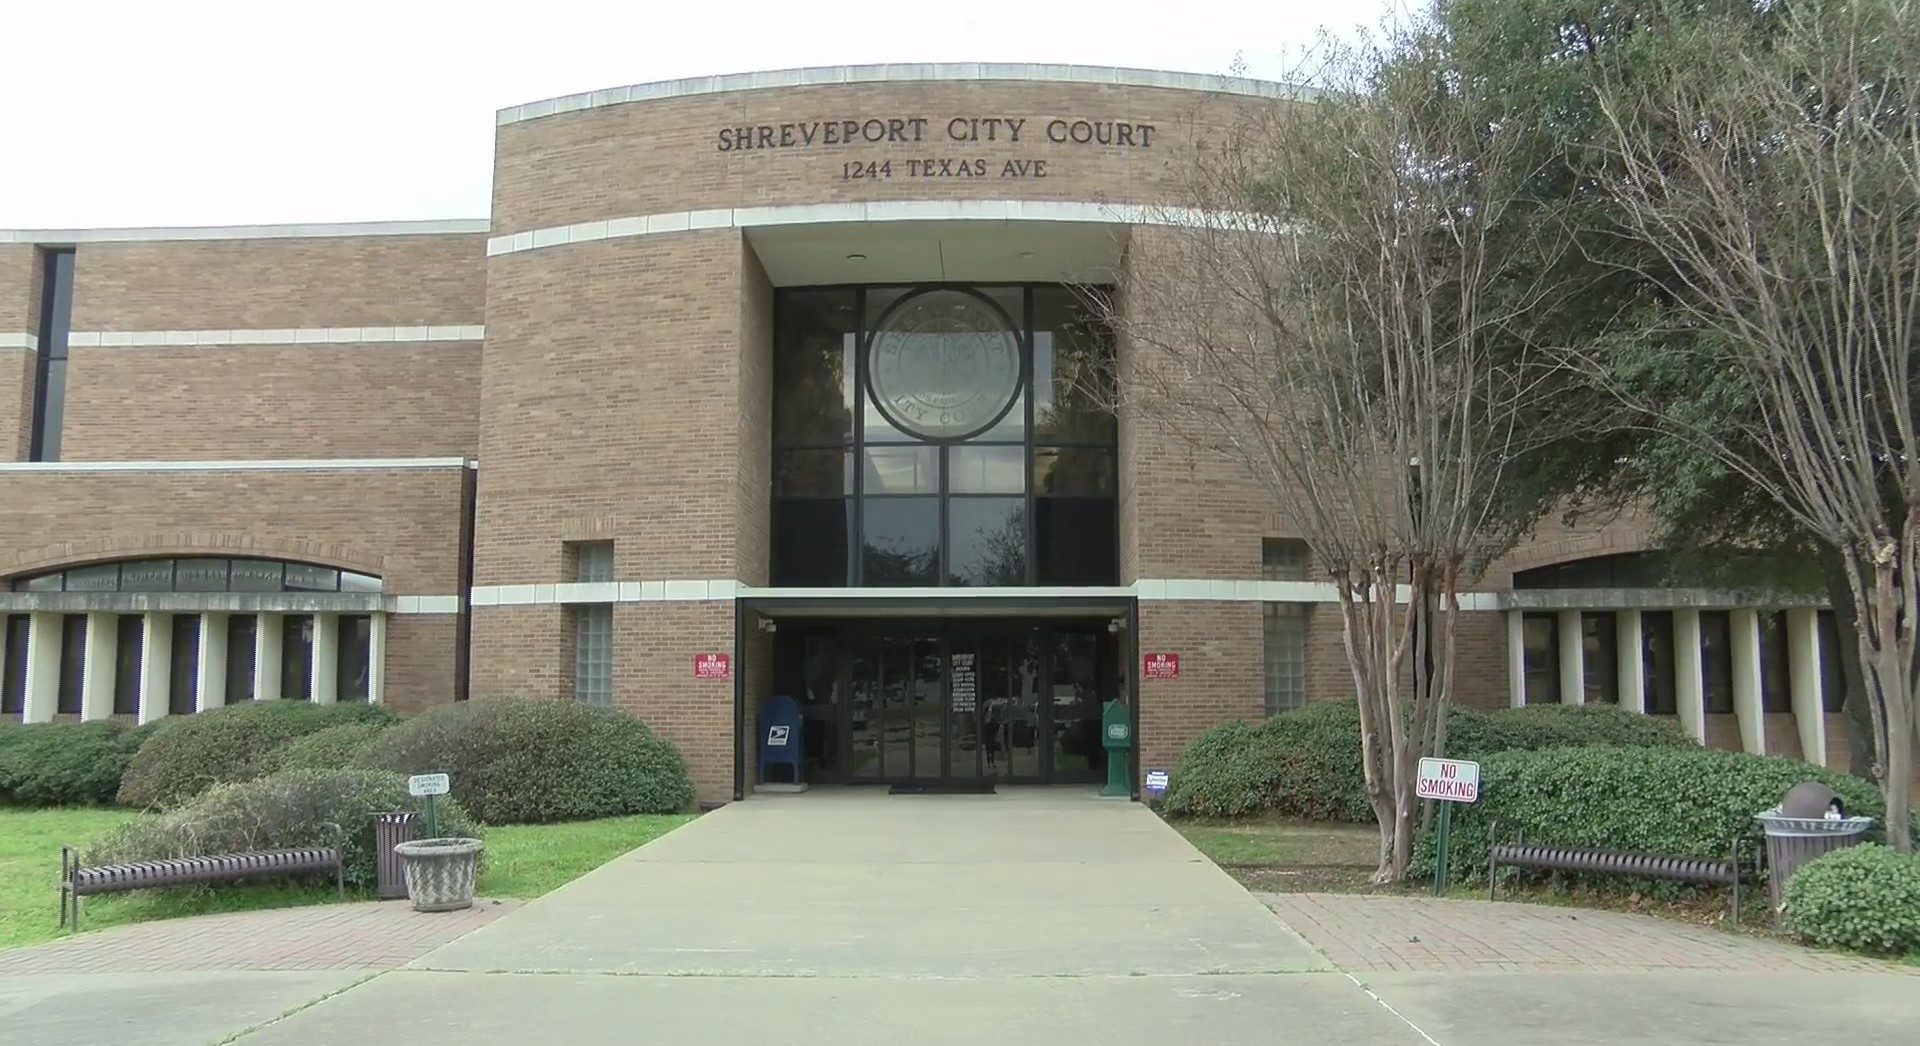 Amnesty Day at Shreveport City Court